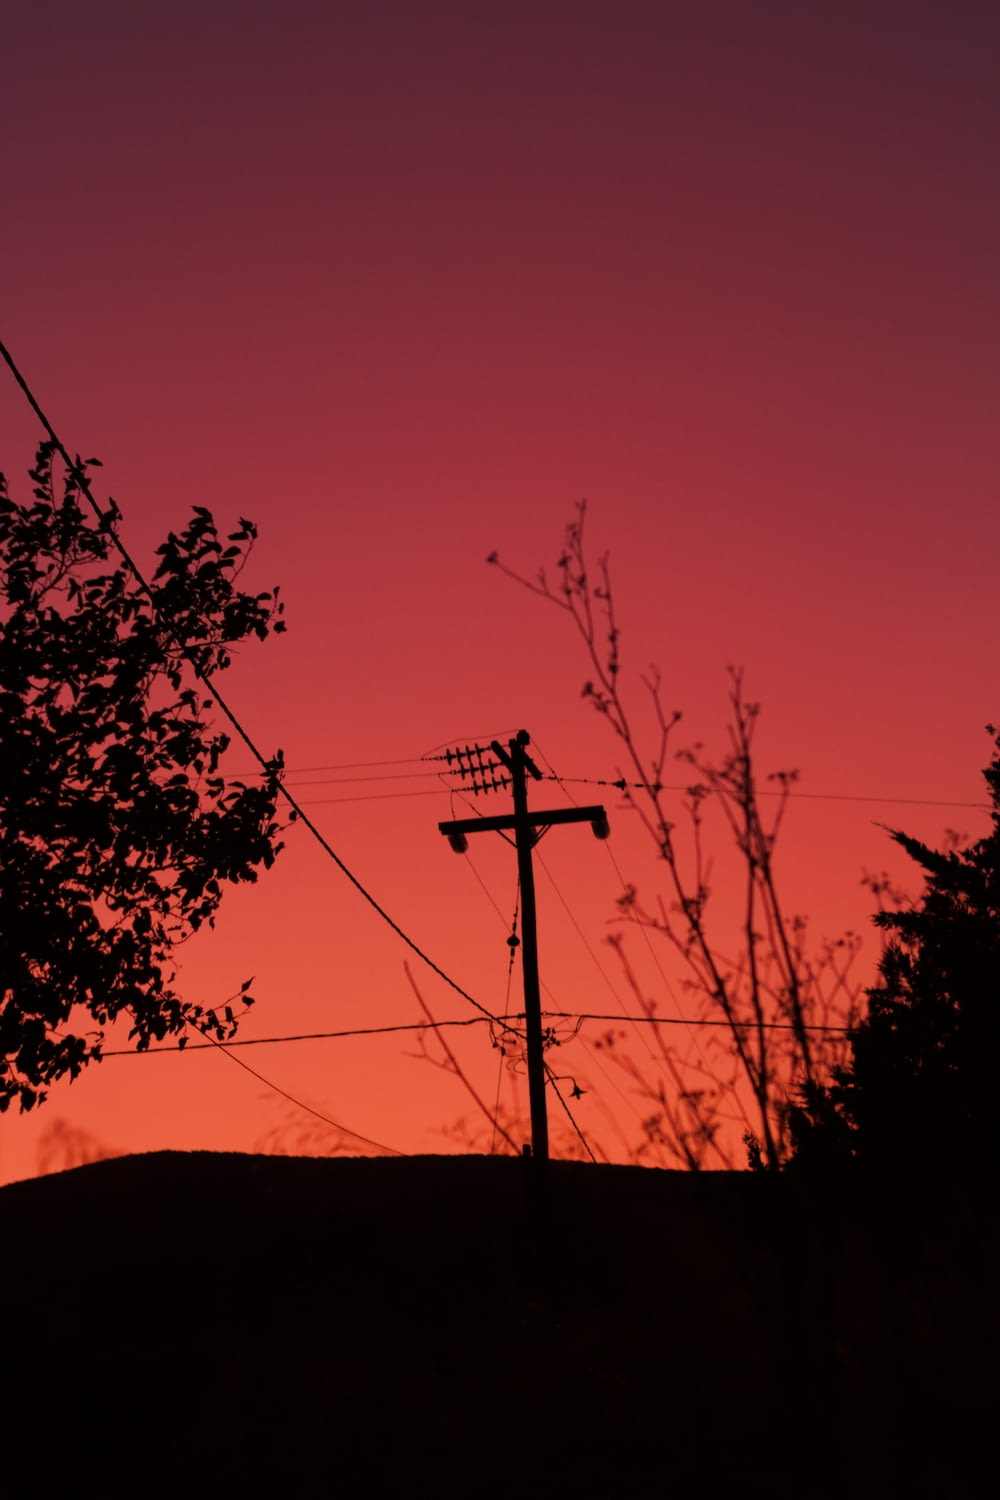 silhouette of utility pole and trees